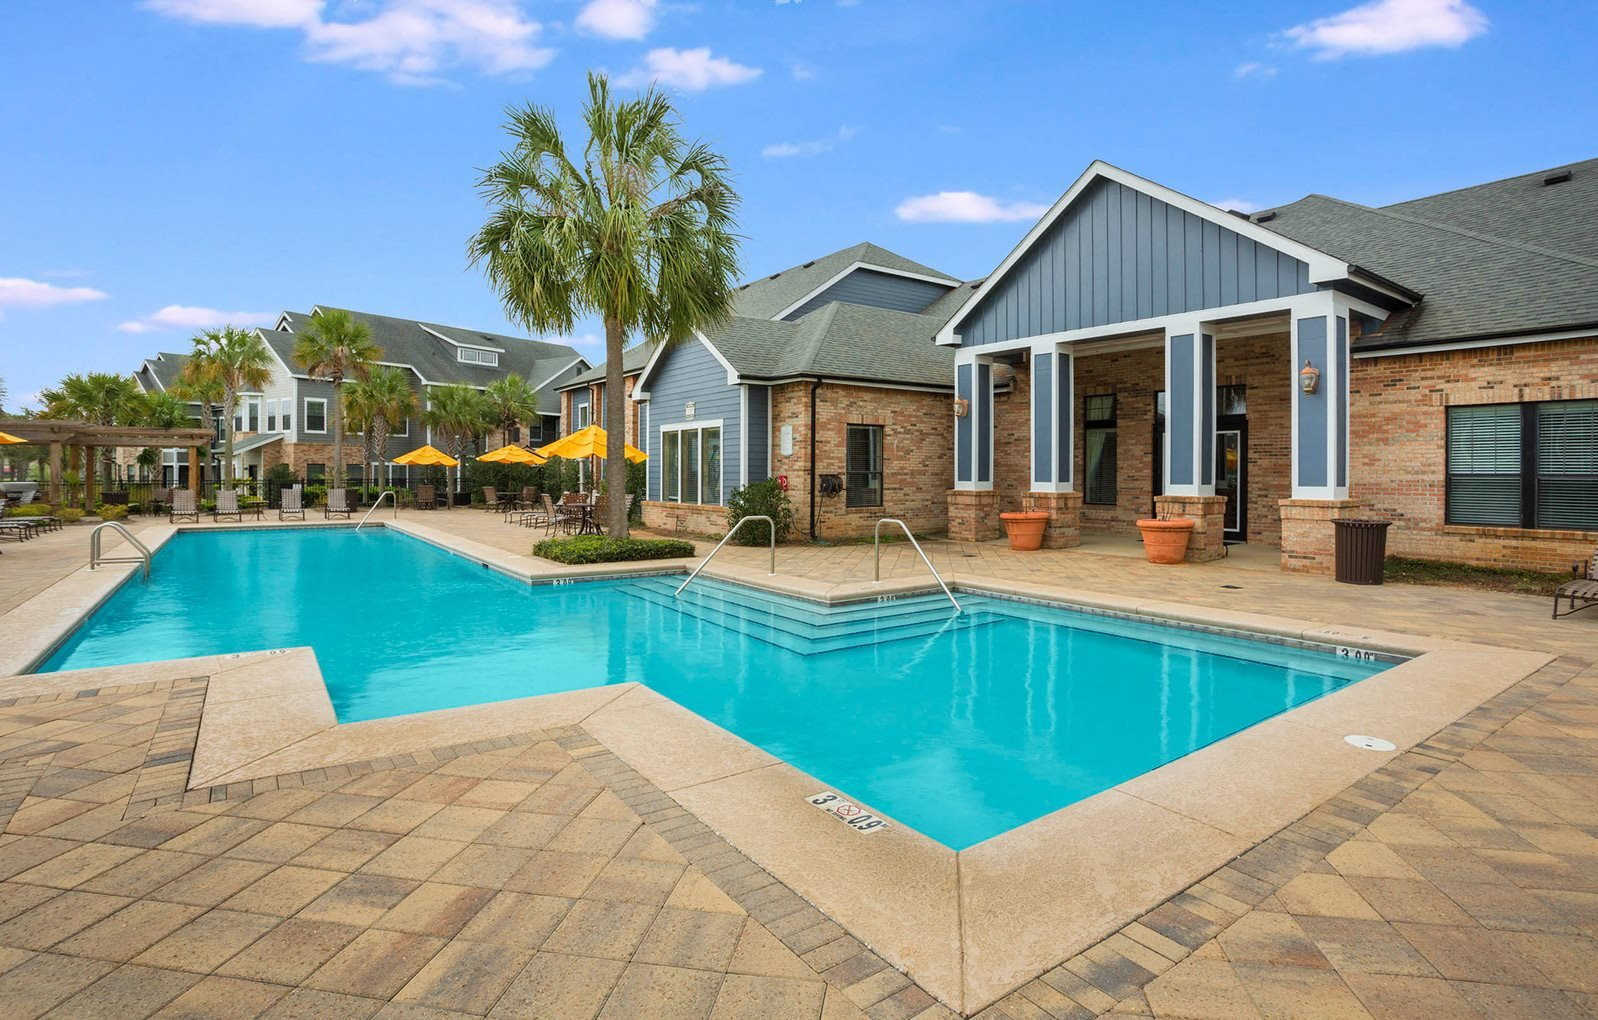 Oversized Pool with Large Sun Deck surround by Palm Trees and Comfortable Lounge Chairs at The Arlington at Eastern Shore Apartments, Spanish Fort, AL 36527